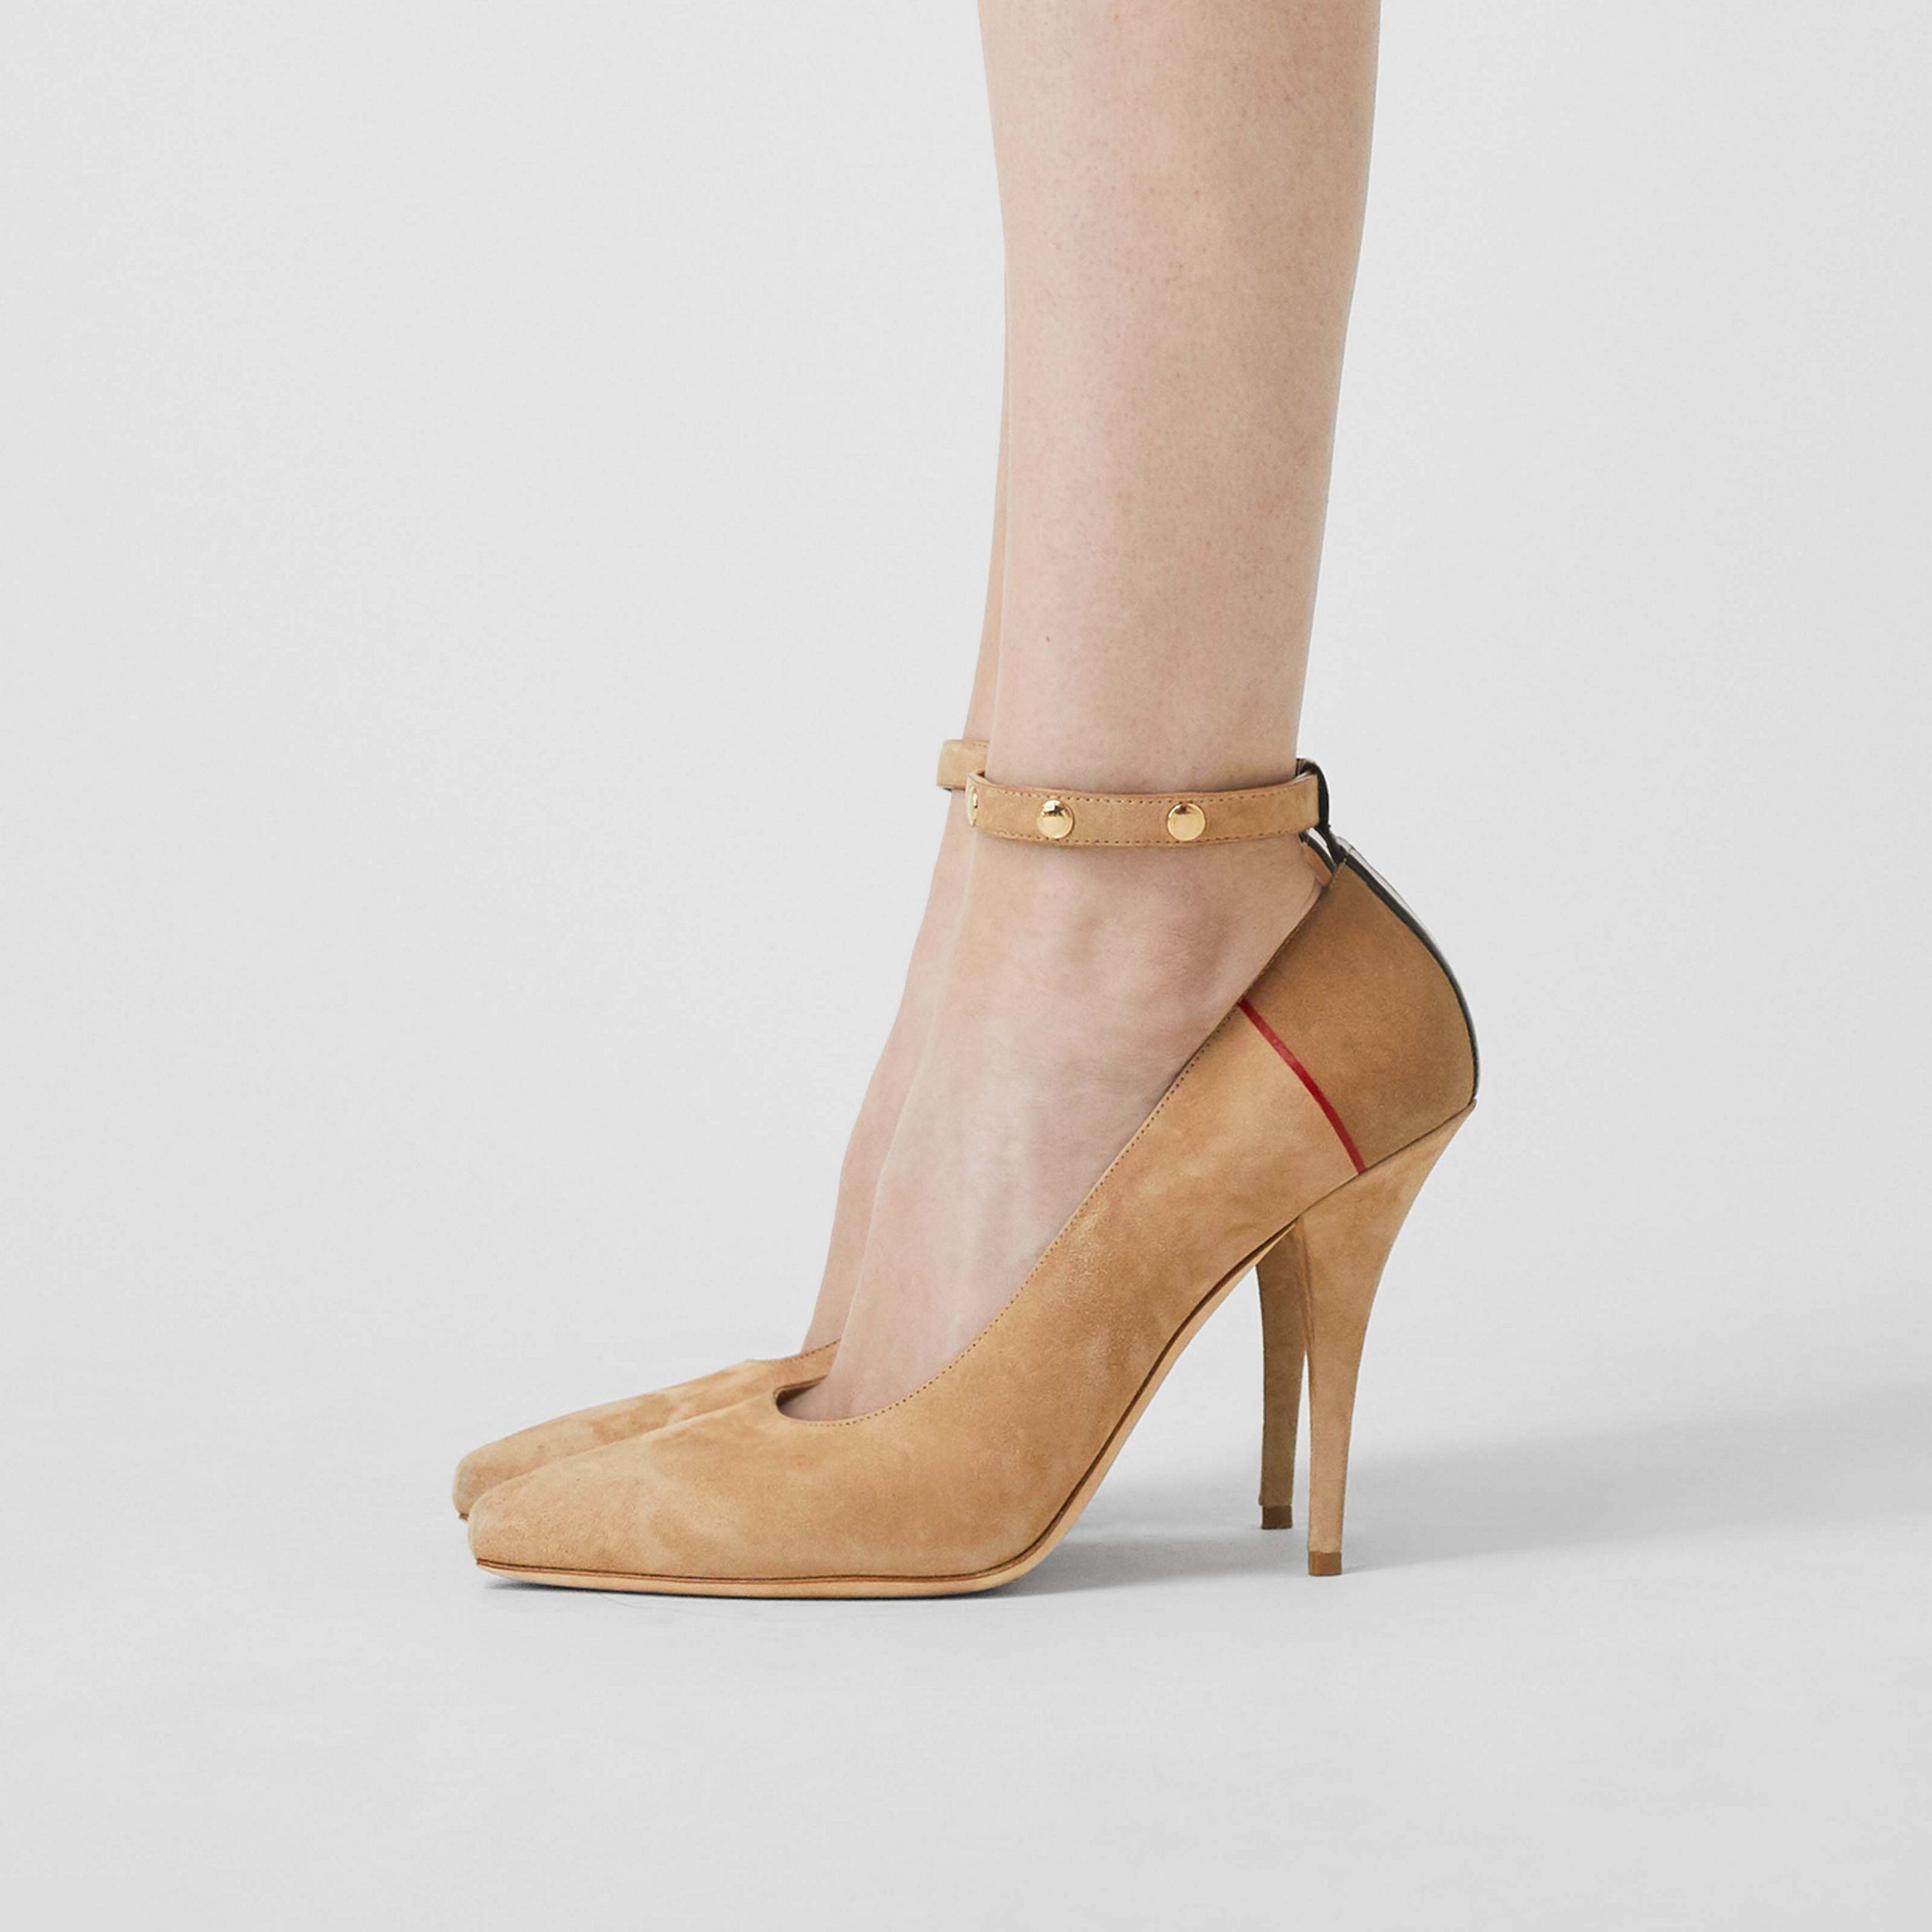 Triple Stud Stripe Detail Suede Point-toe Pumps in Tawny | Burberry - 3